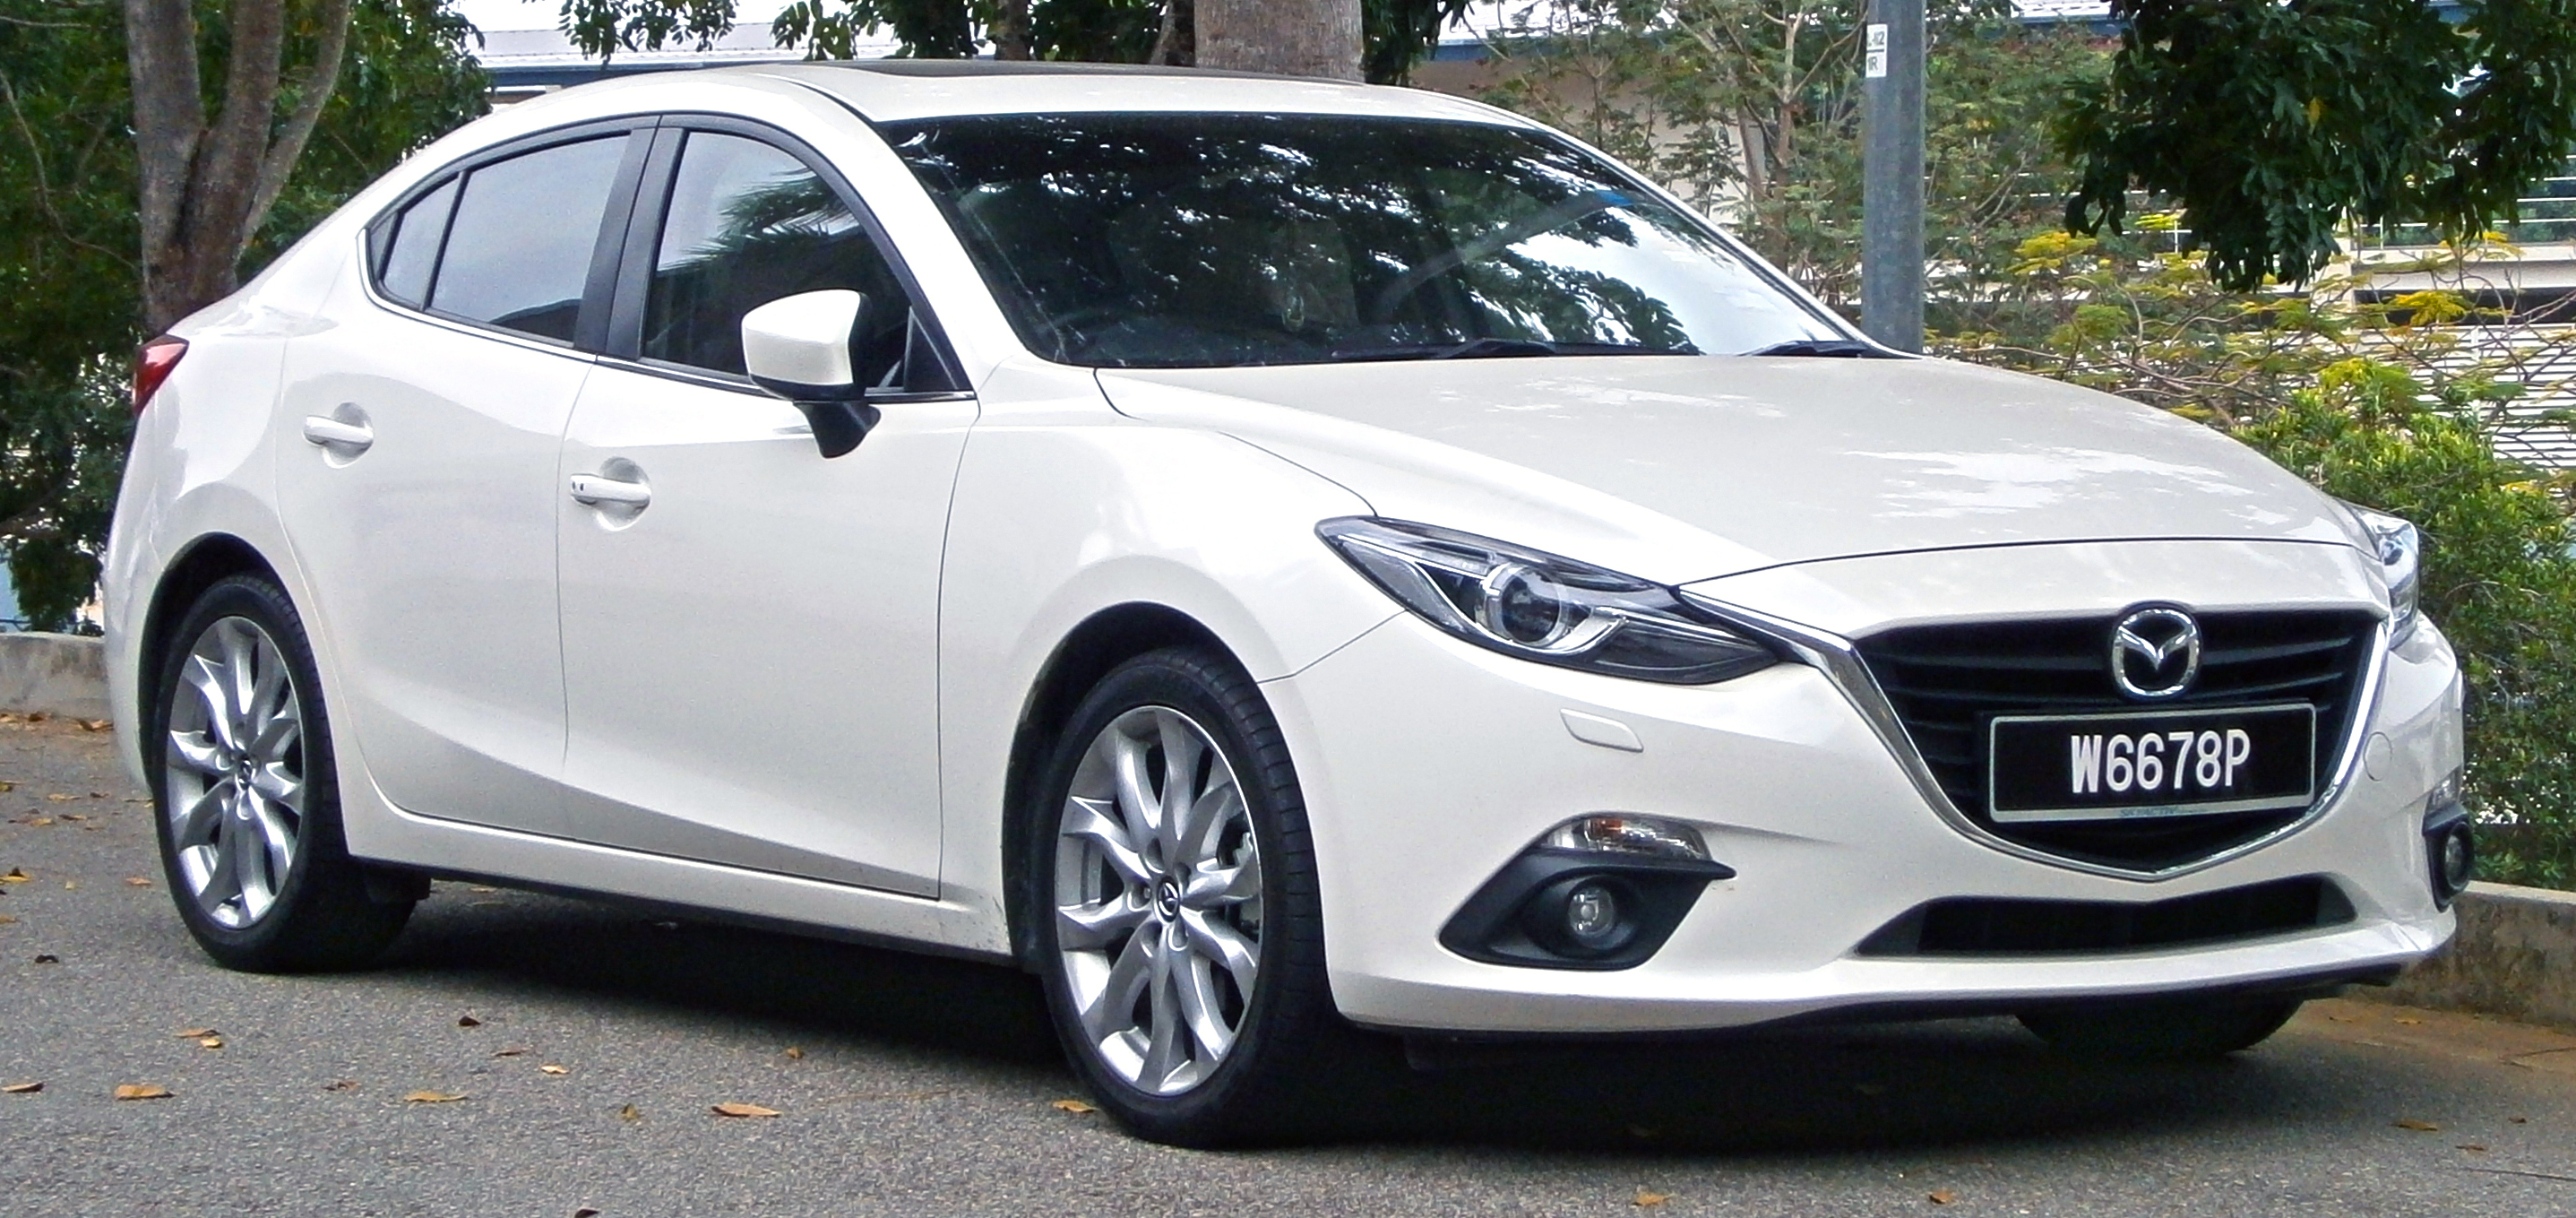 file:2014 mazda 3 sedan (bm) 2.0 skyactiv (cbu) 4-door sedan